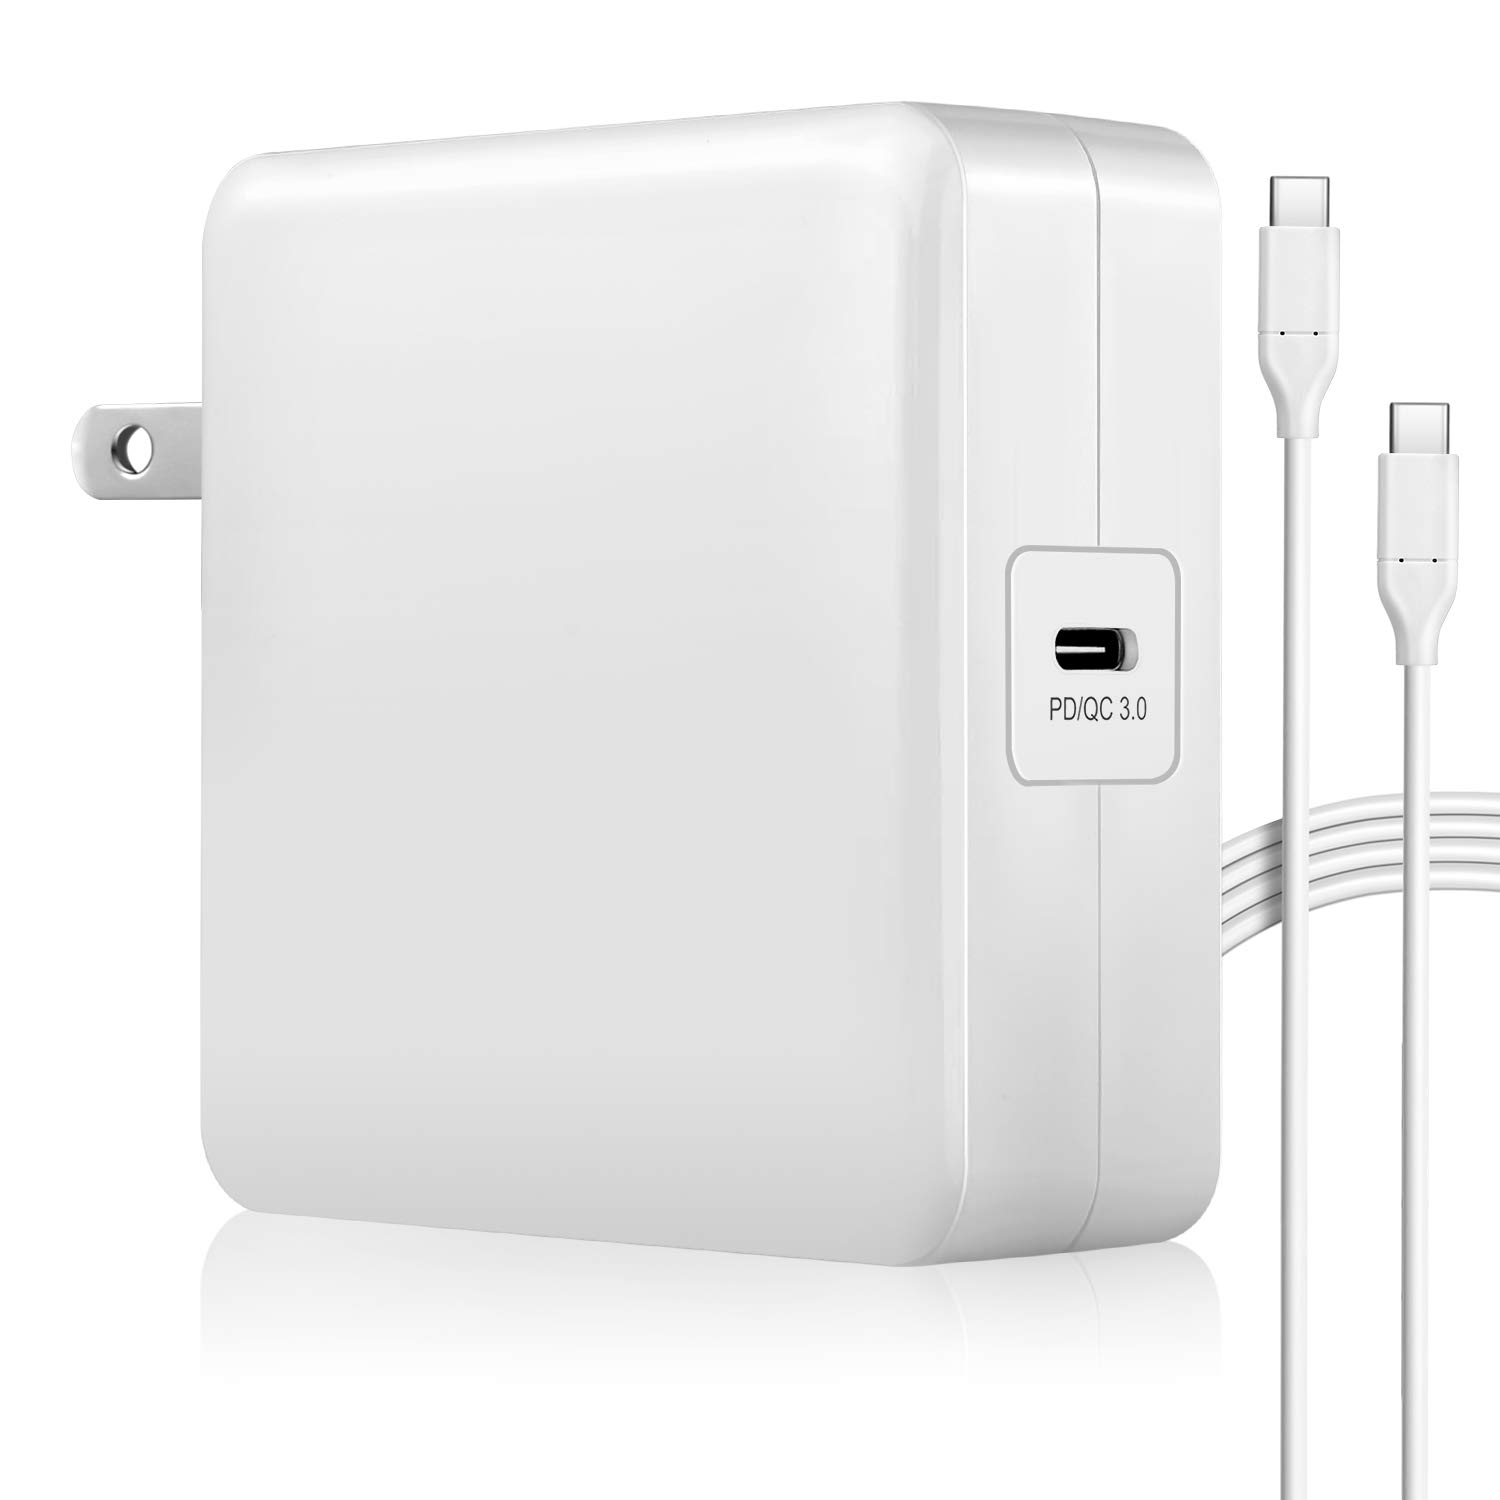 87w USB-C Power Adapter Compatible with MacBook Pro Charger USB C 87w New MacBook Air Charger 2018 13 Mac Thunderbolt Charger 2016 15 2017 Type C Laptop Charger More Devices(87w)